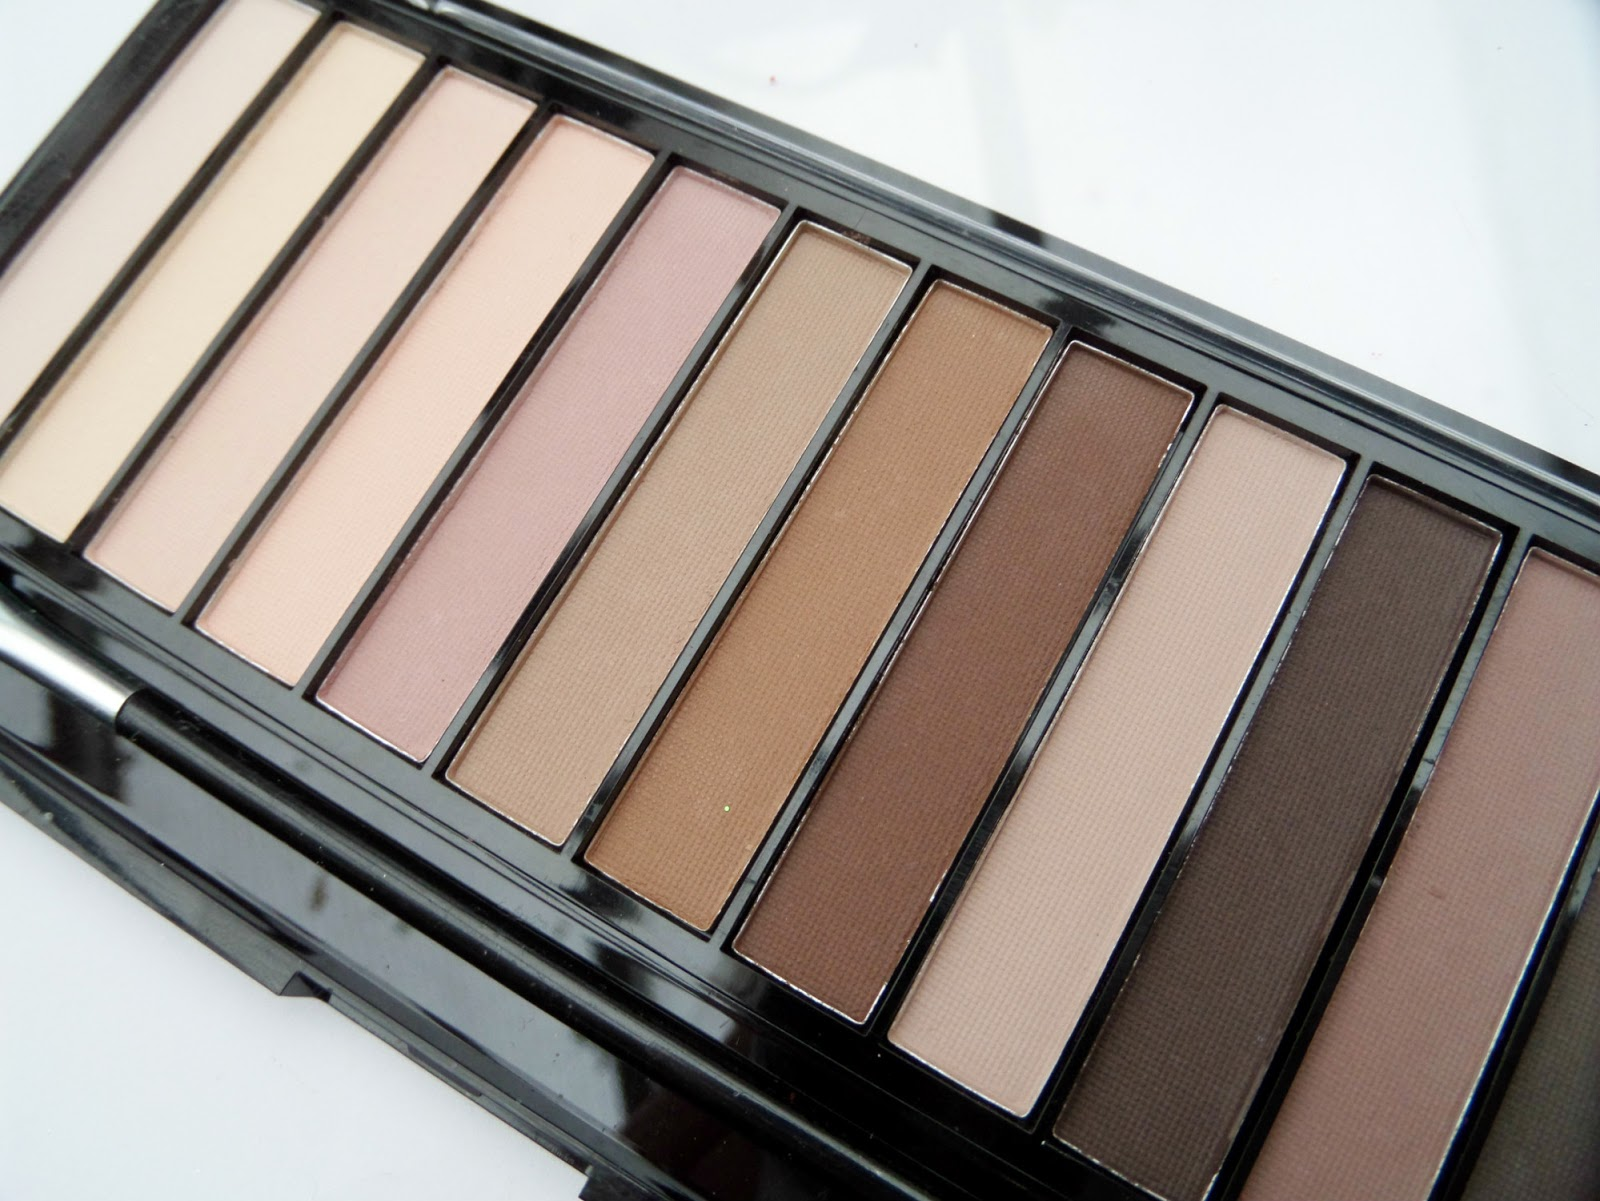 New Makeup Revolution Essential Mattes 2 Palette